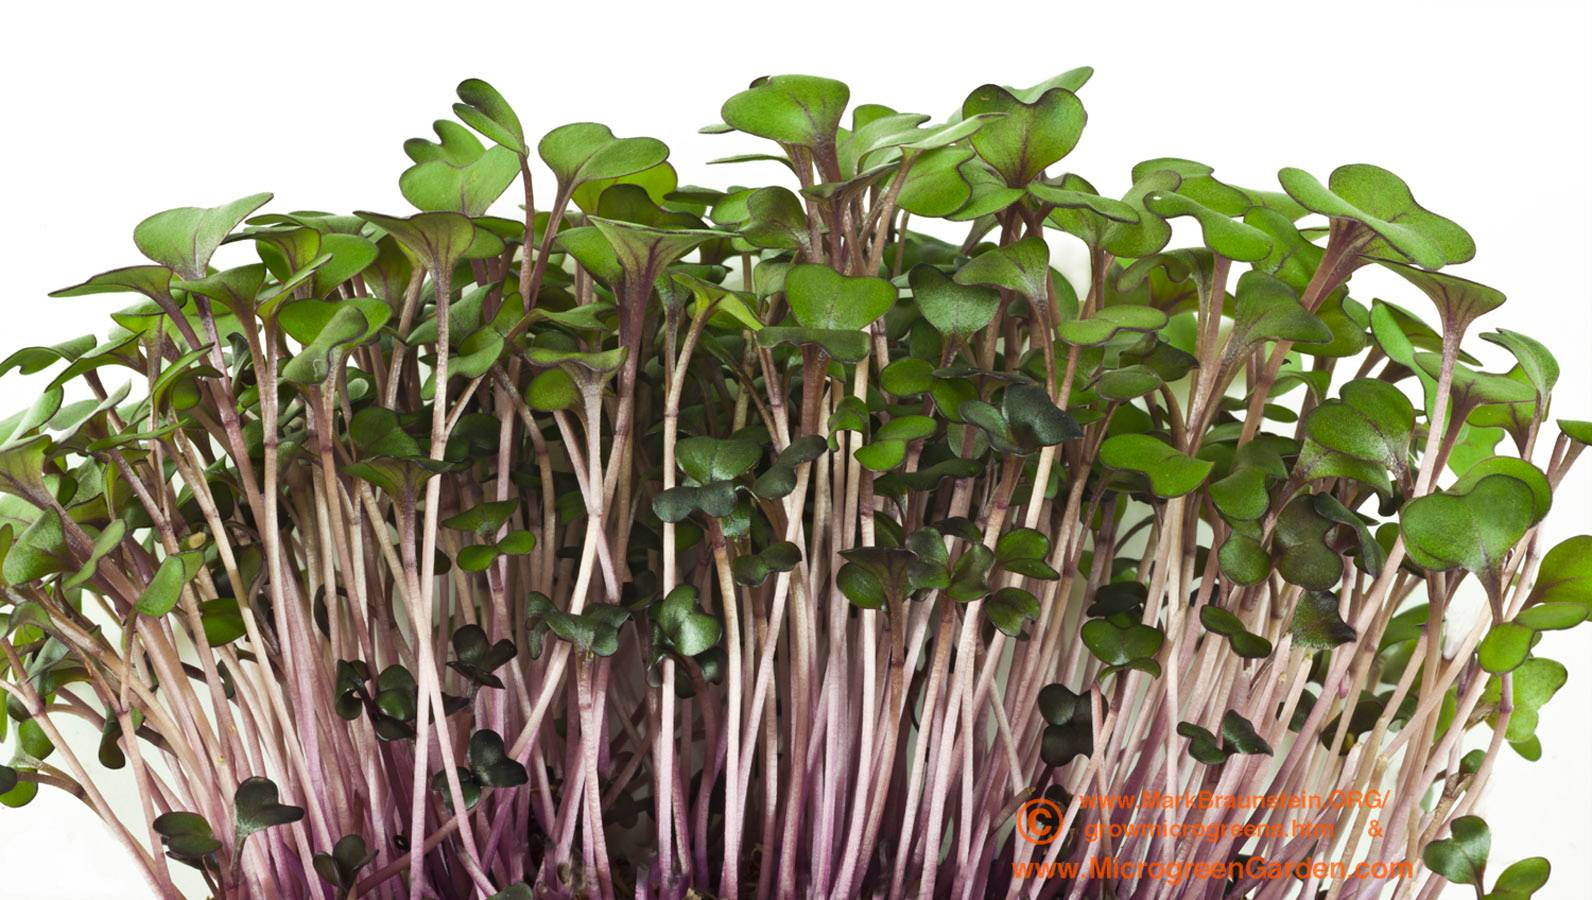 RED CABBAGE microgreens, 2 weeks since sown